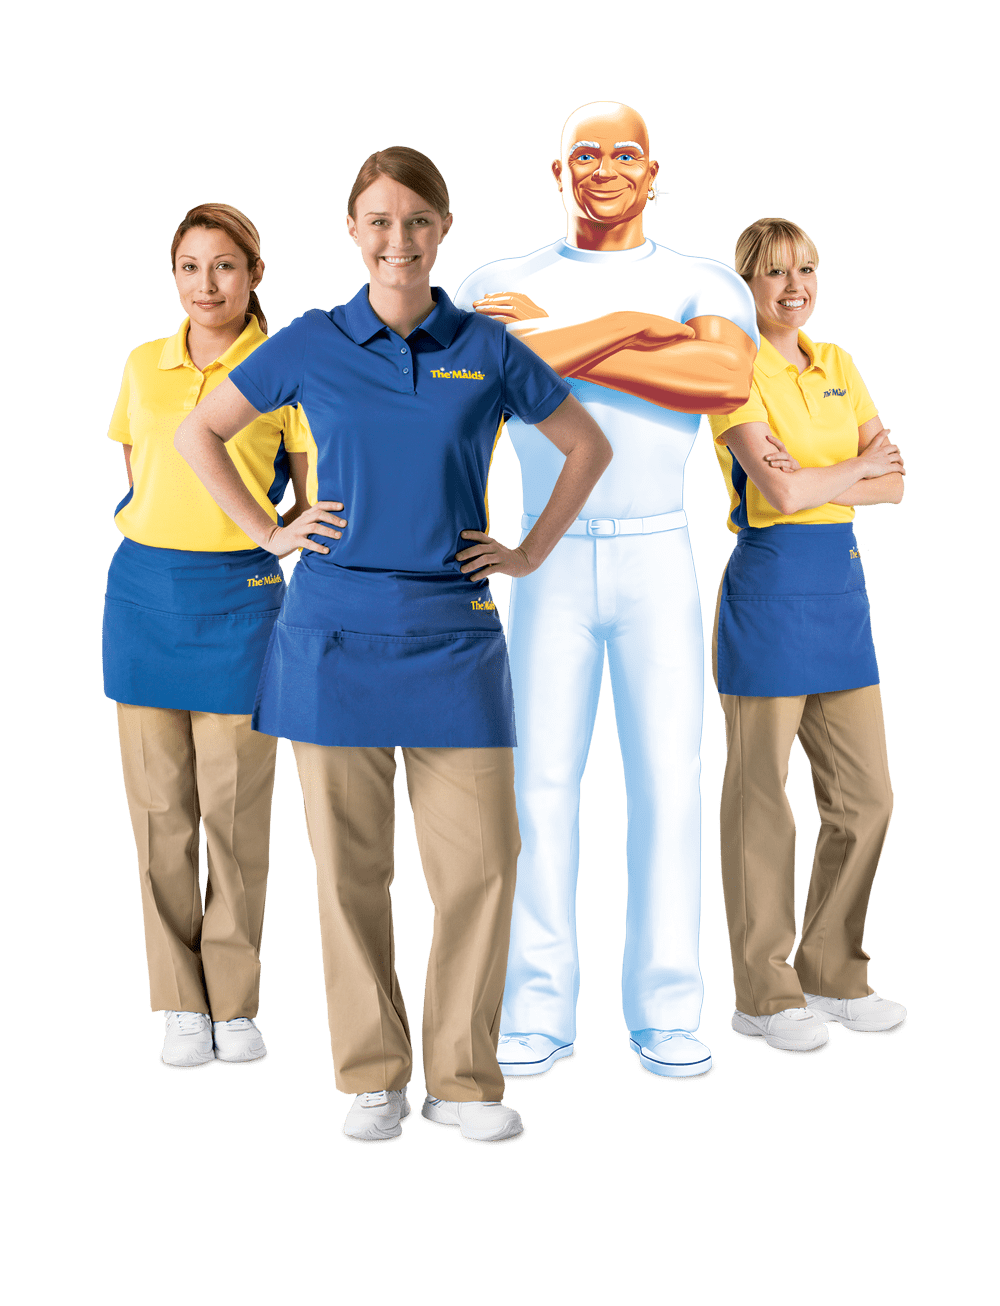 The Maids House Cleaning - The Maids in Butler and Warren Counties Home Cleaning